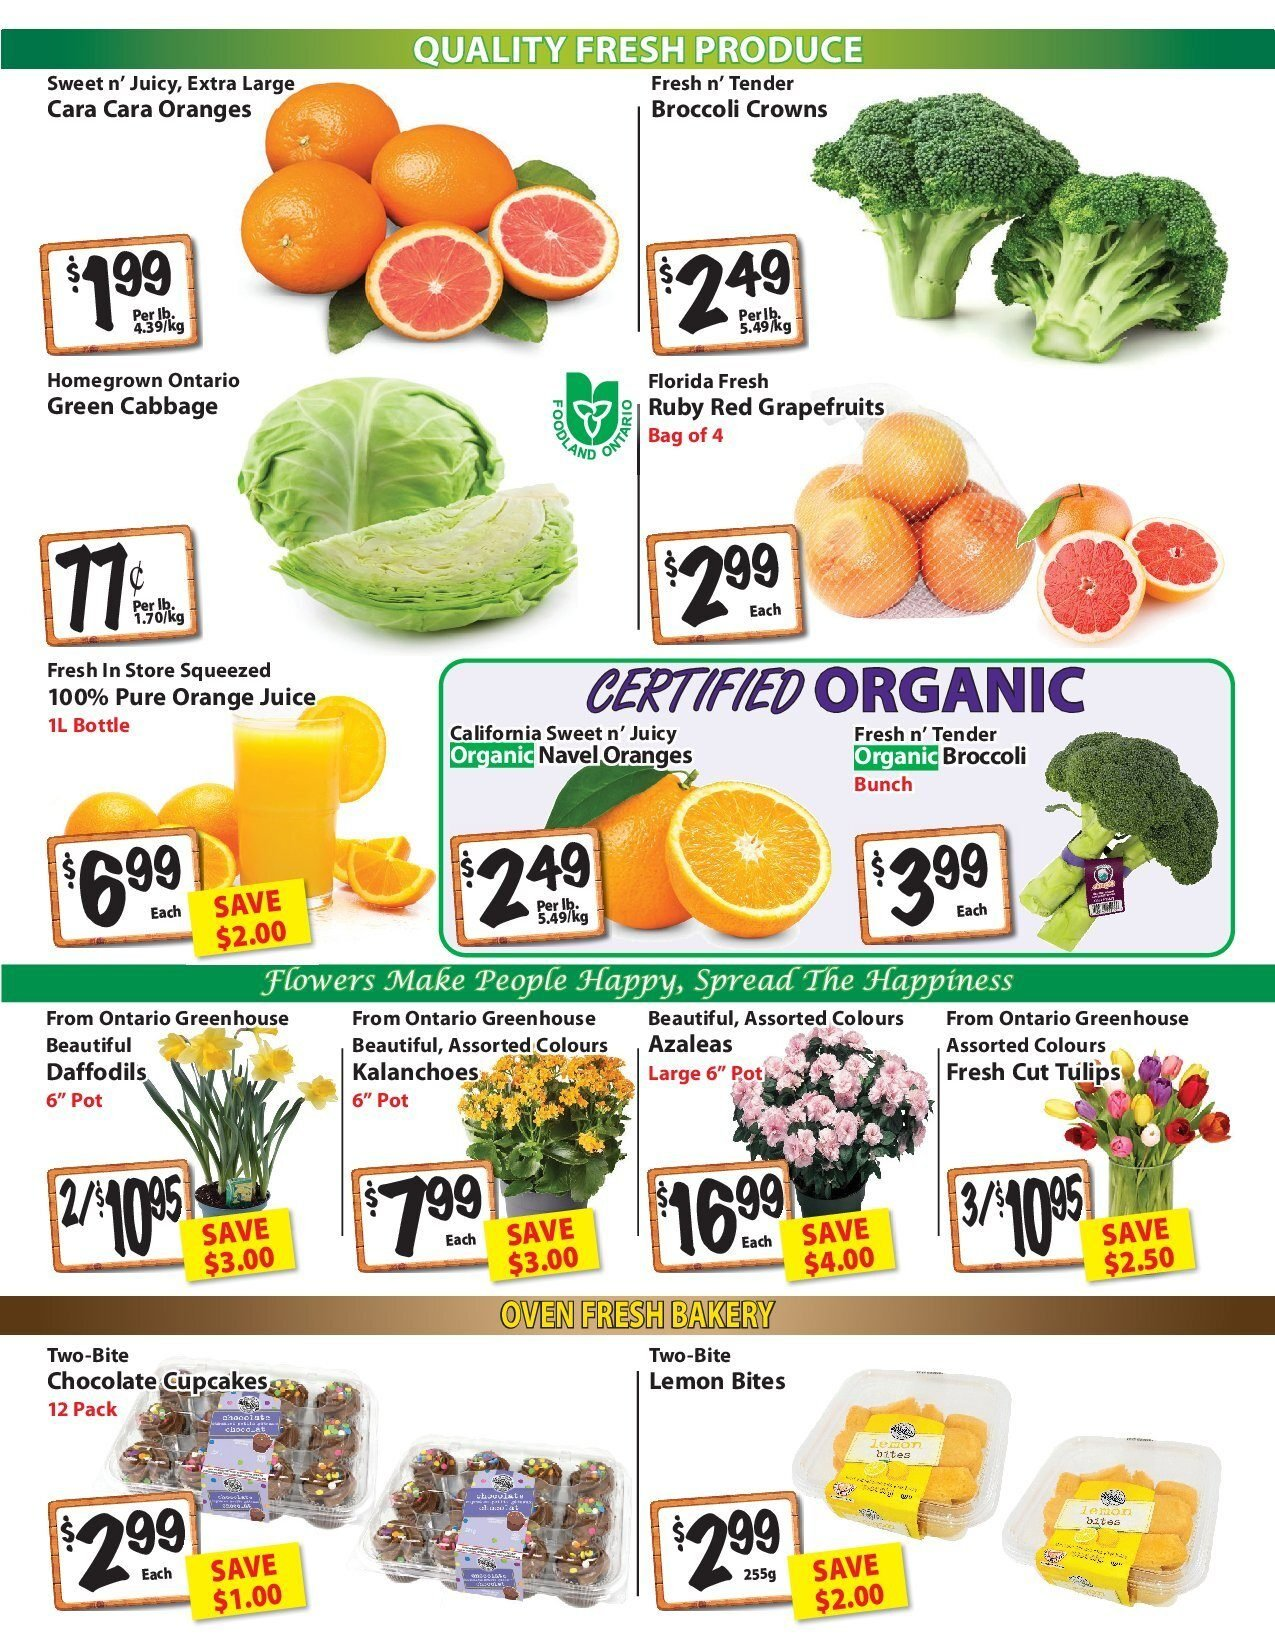 The Garden Basket - Weekly Specials - Page 2